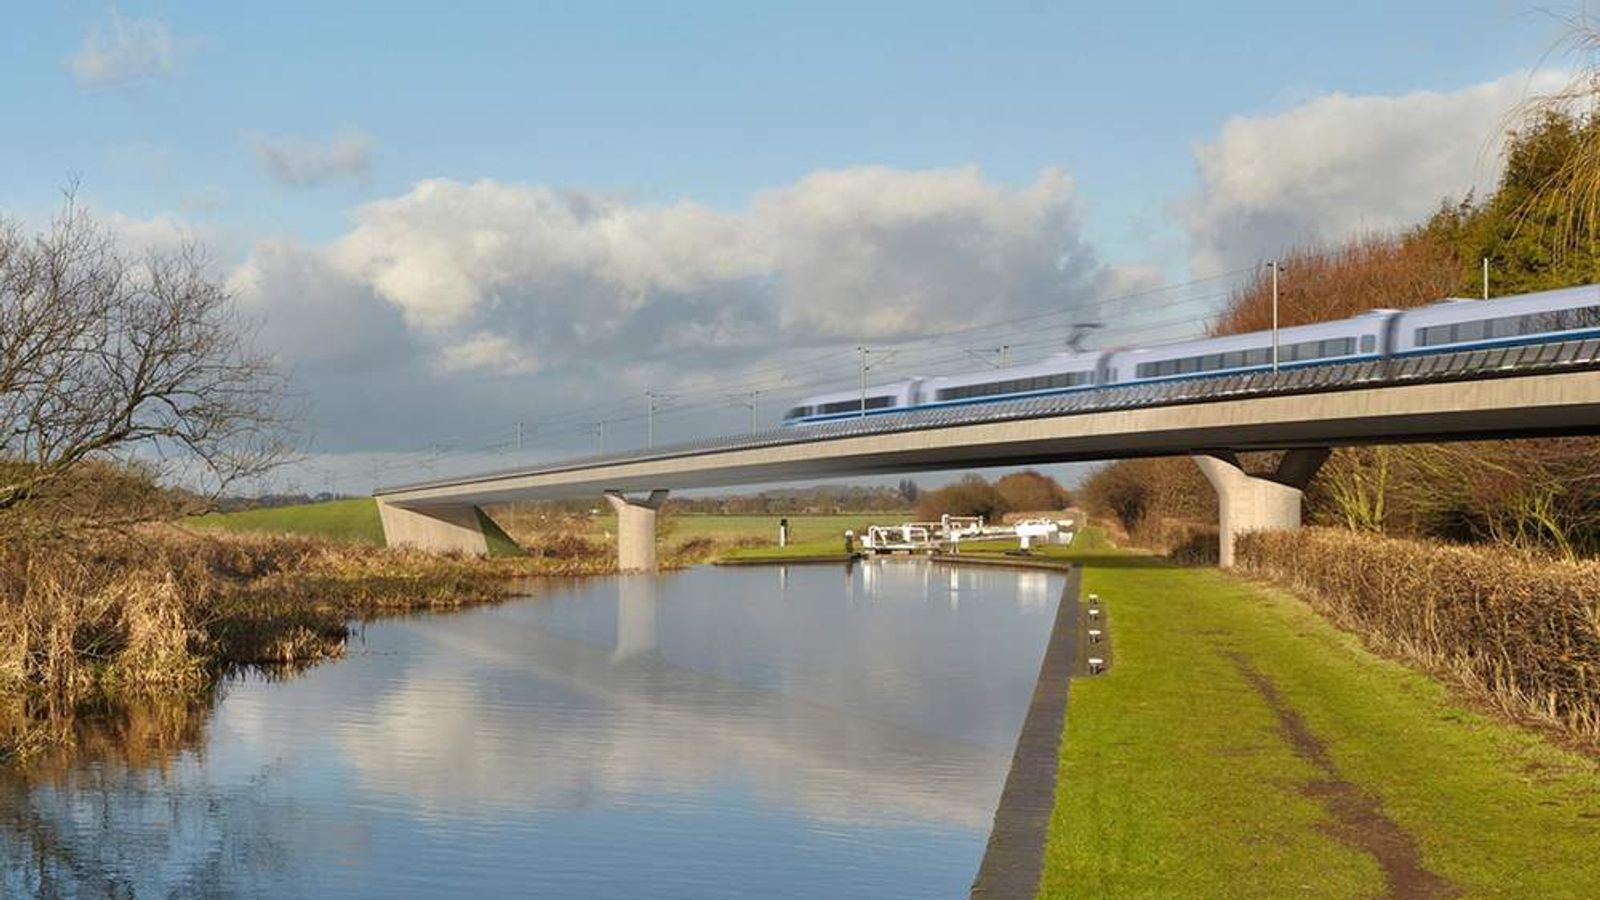 HS2 high-speed route over Fazeley viaduct